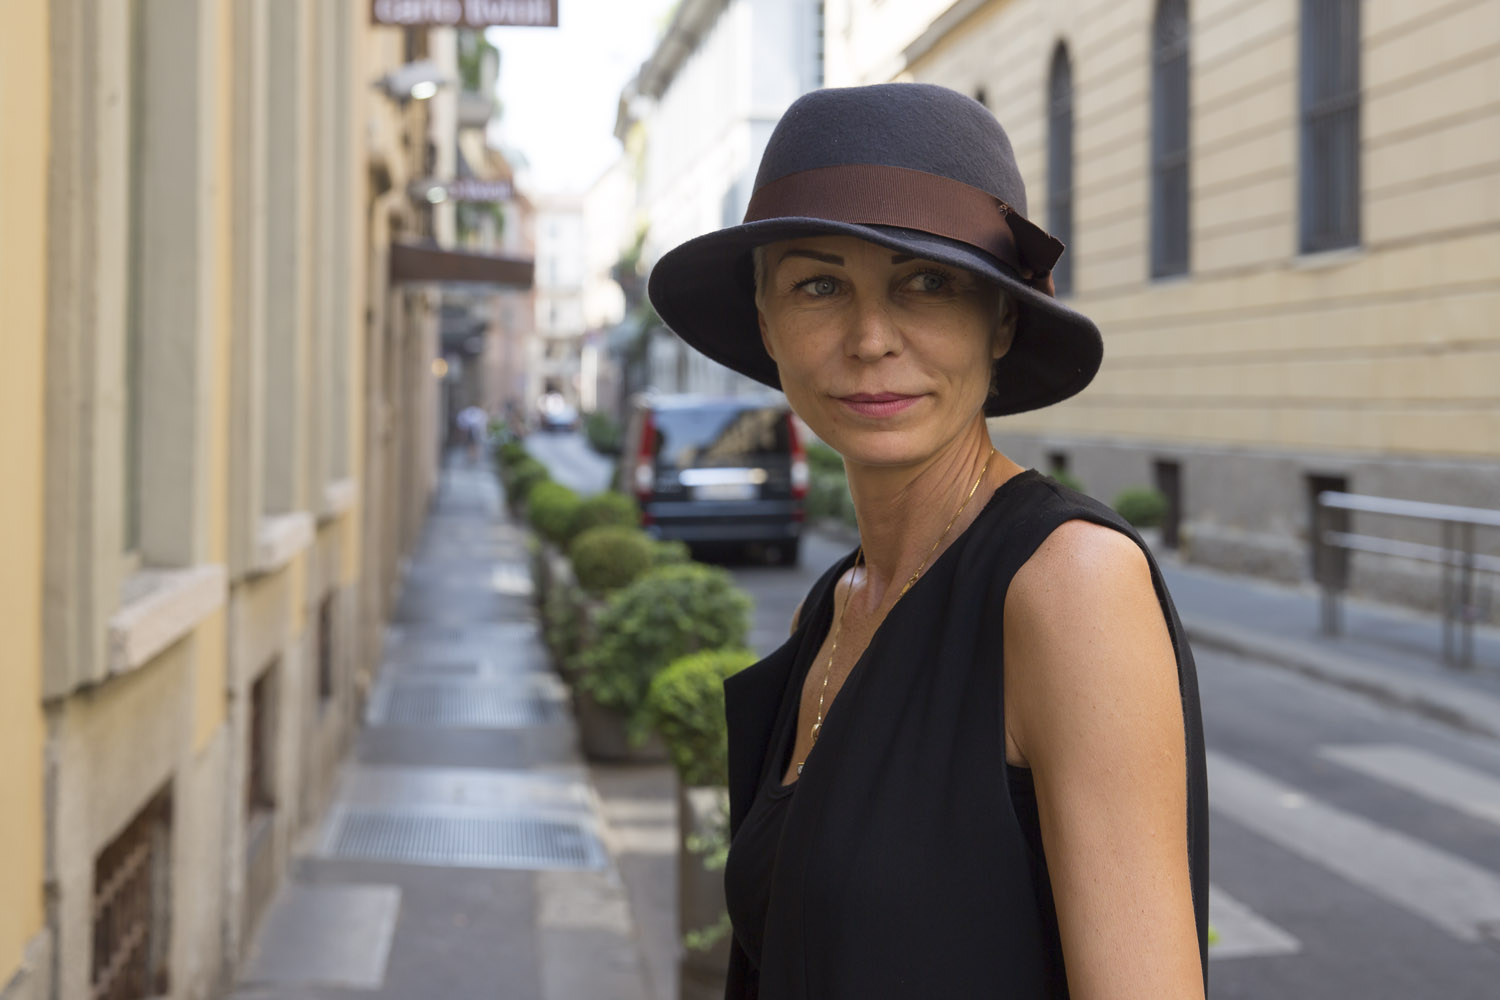 Natalia wears vest by Ilaria Nistri and hat by Nostra Santissima.